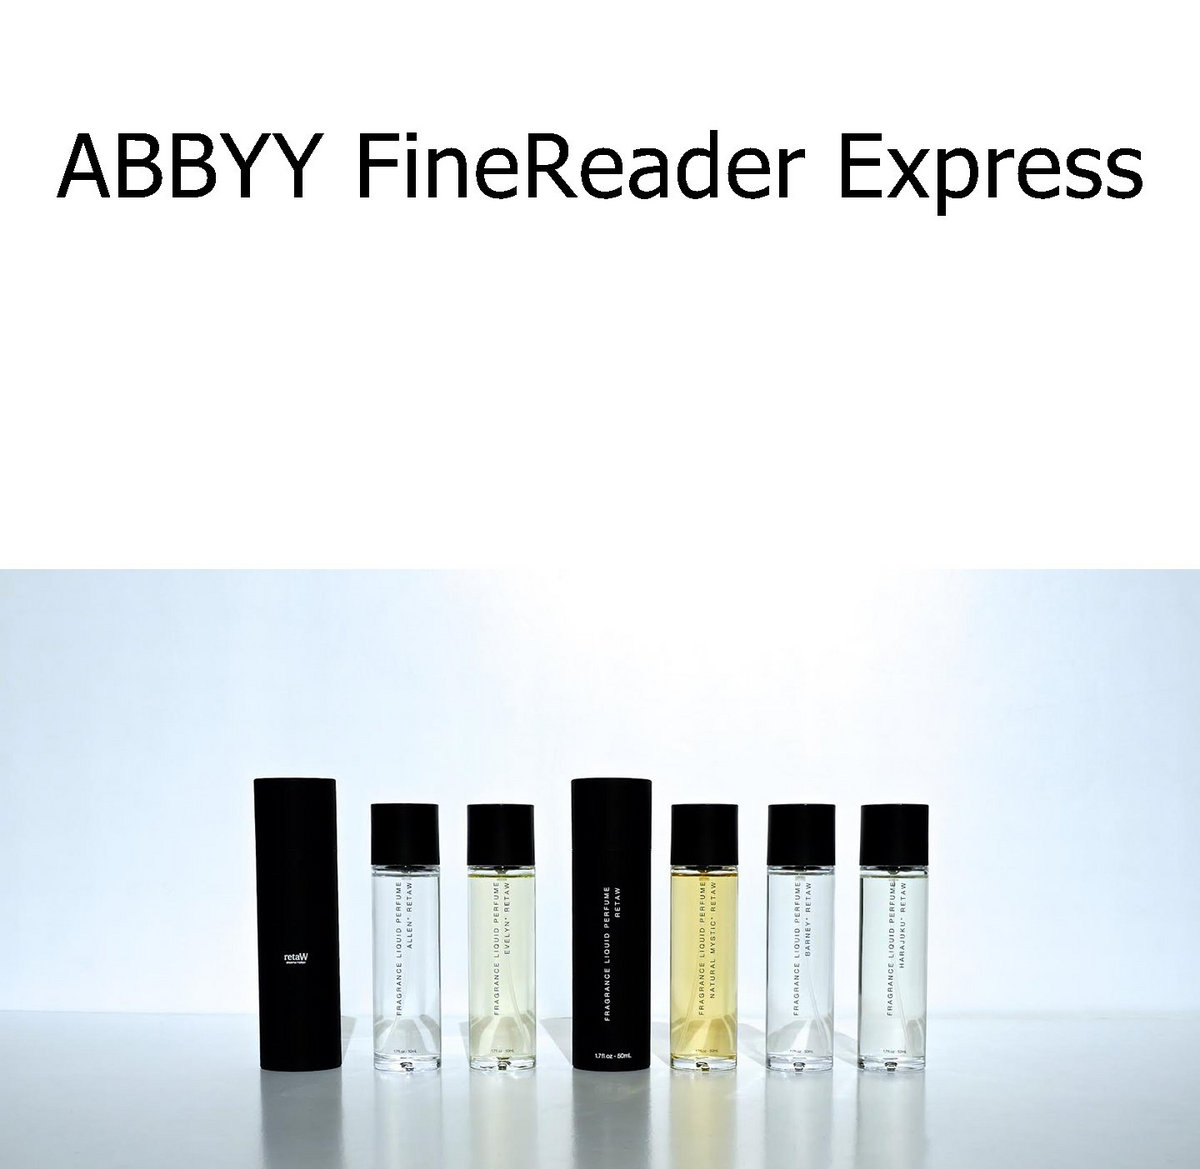 Abbyy Finereader Ocr Pro For Mac v-8.5.676060-abbyy-finereader-express.dmg 🏵 how install to